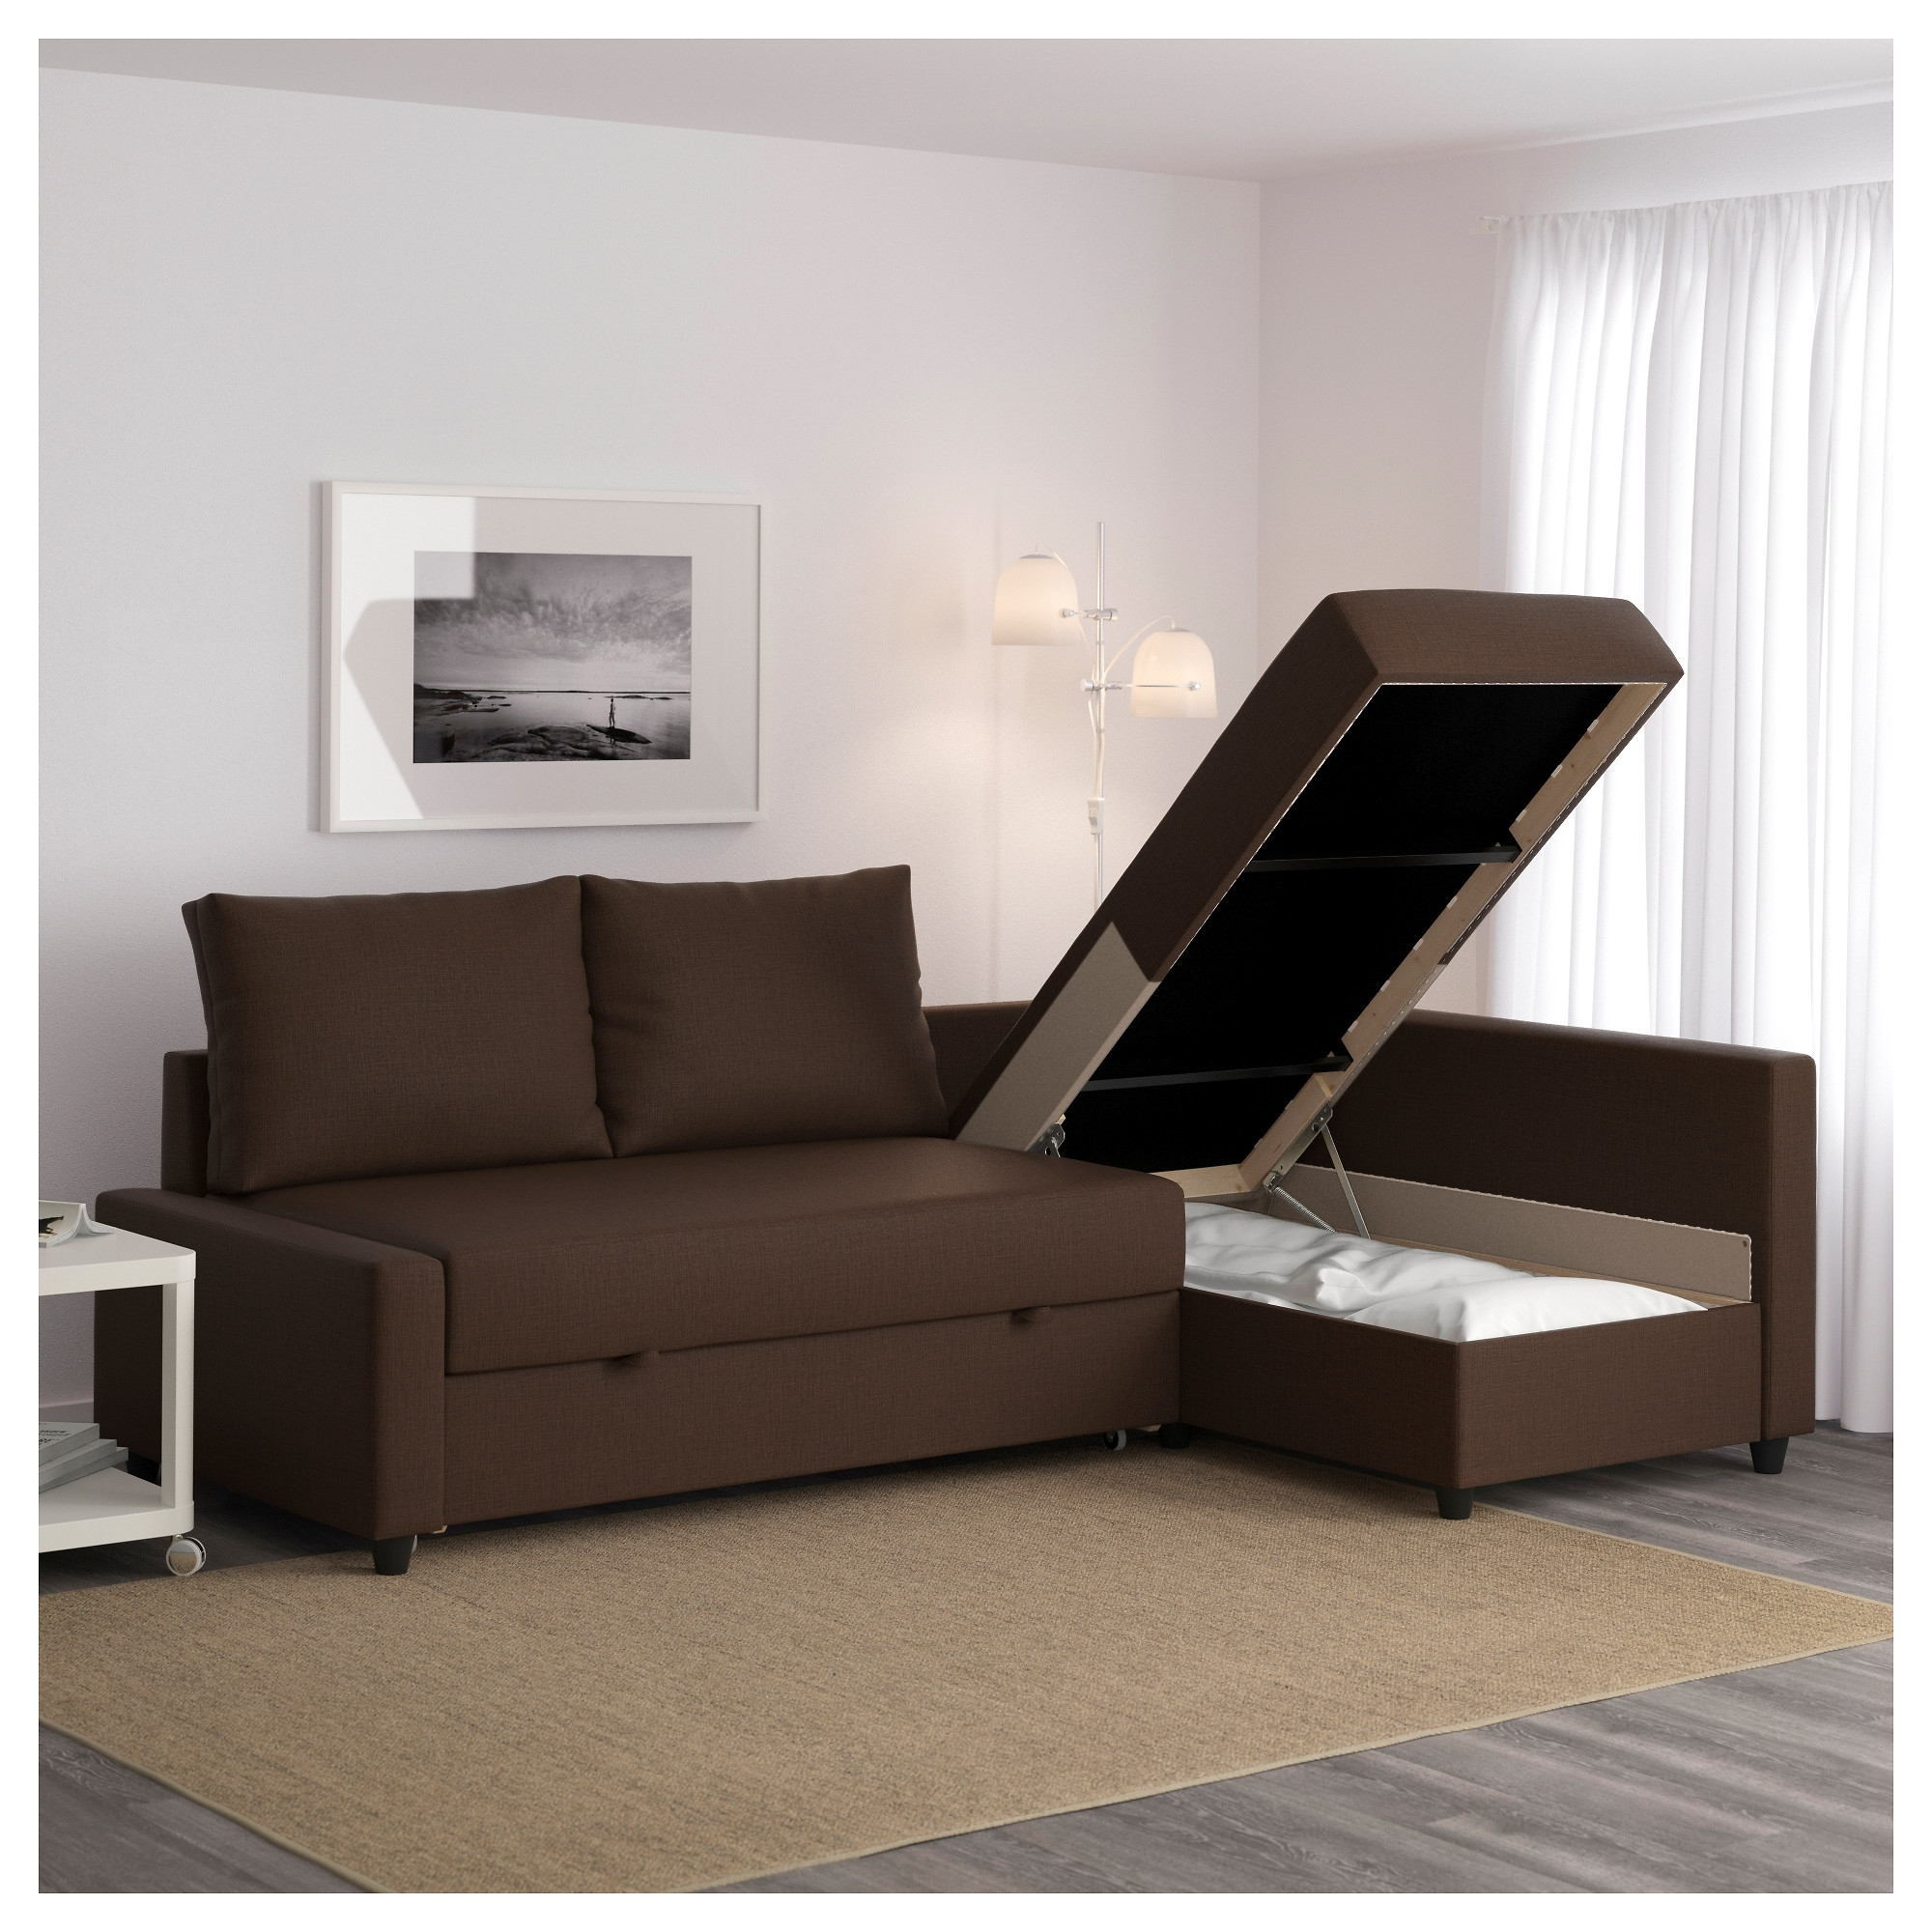 Ikea Corner Sofas With Storage Throughout Most Popular Friheten Corner Sofa Bed With Storage Skiftebo Brown – Ikea (View 12 of 20)